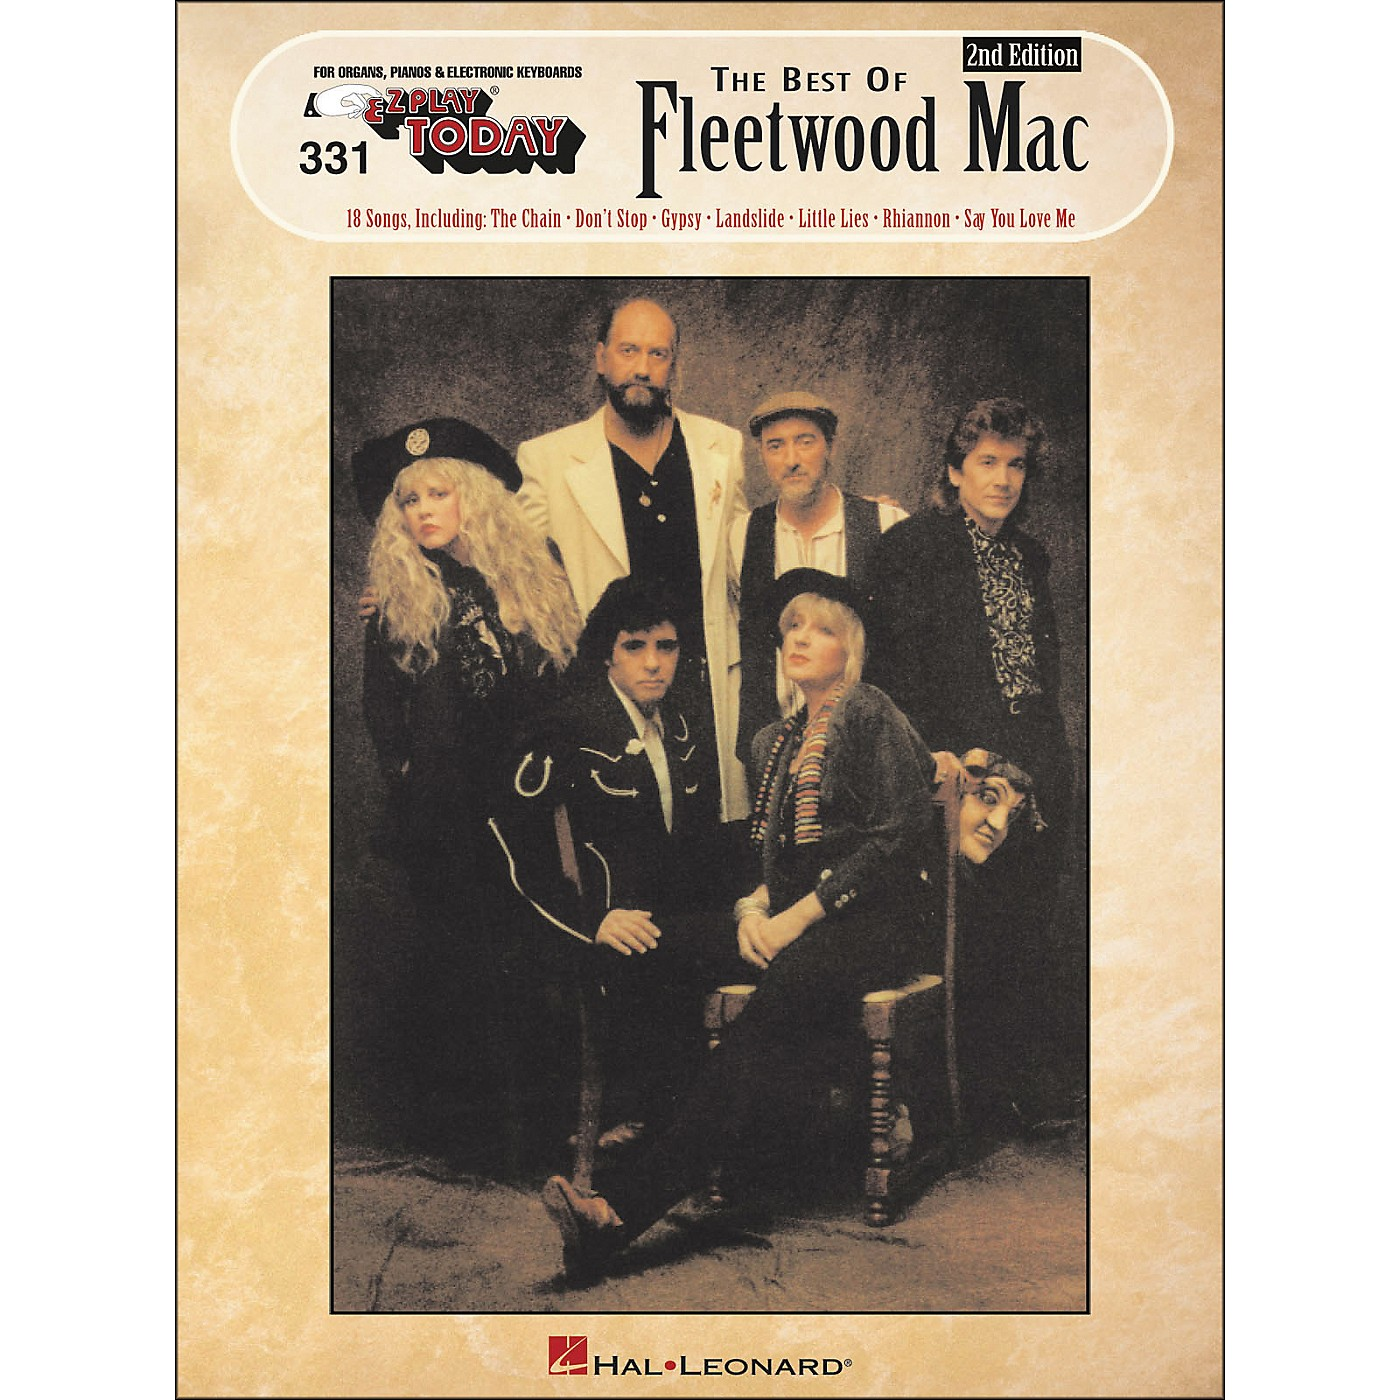 Hal Leonard Best Of Fleetwood Mac 2nd Edition E-Z Play 331 thumbnail